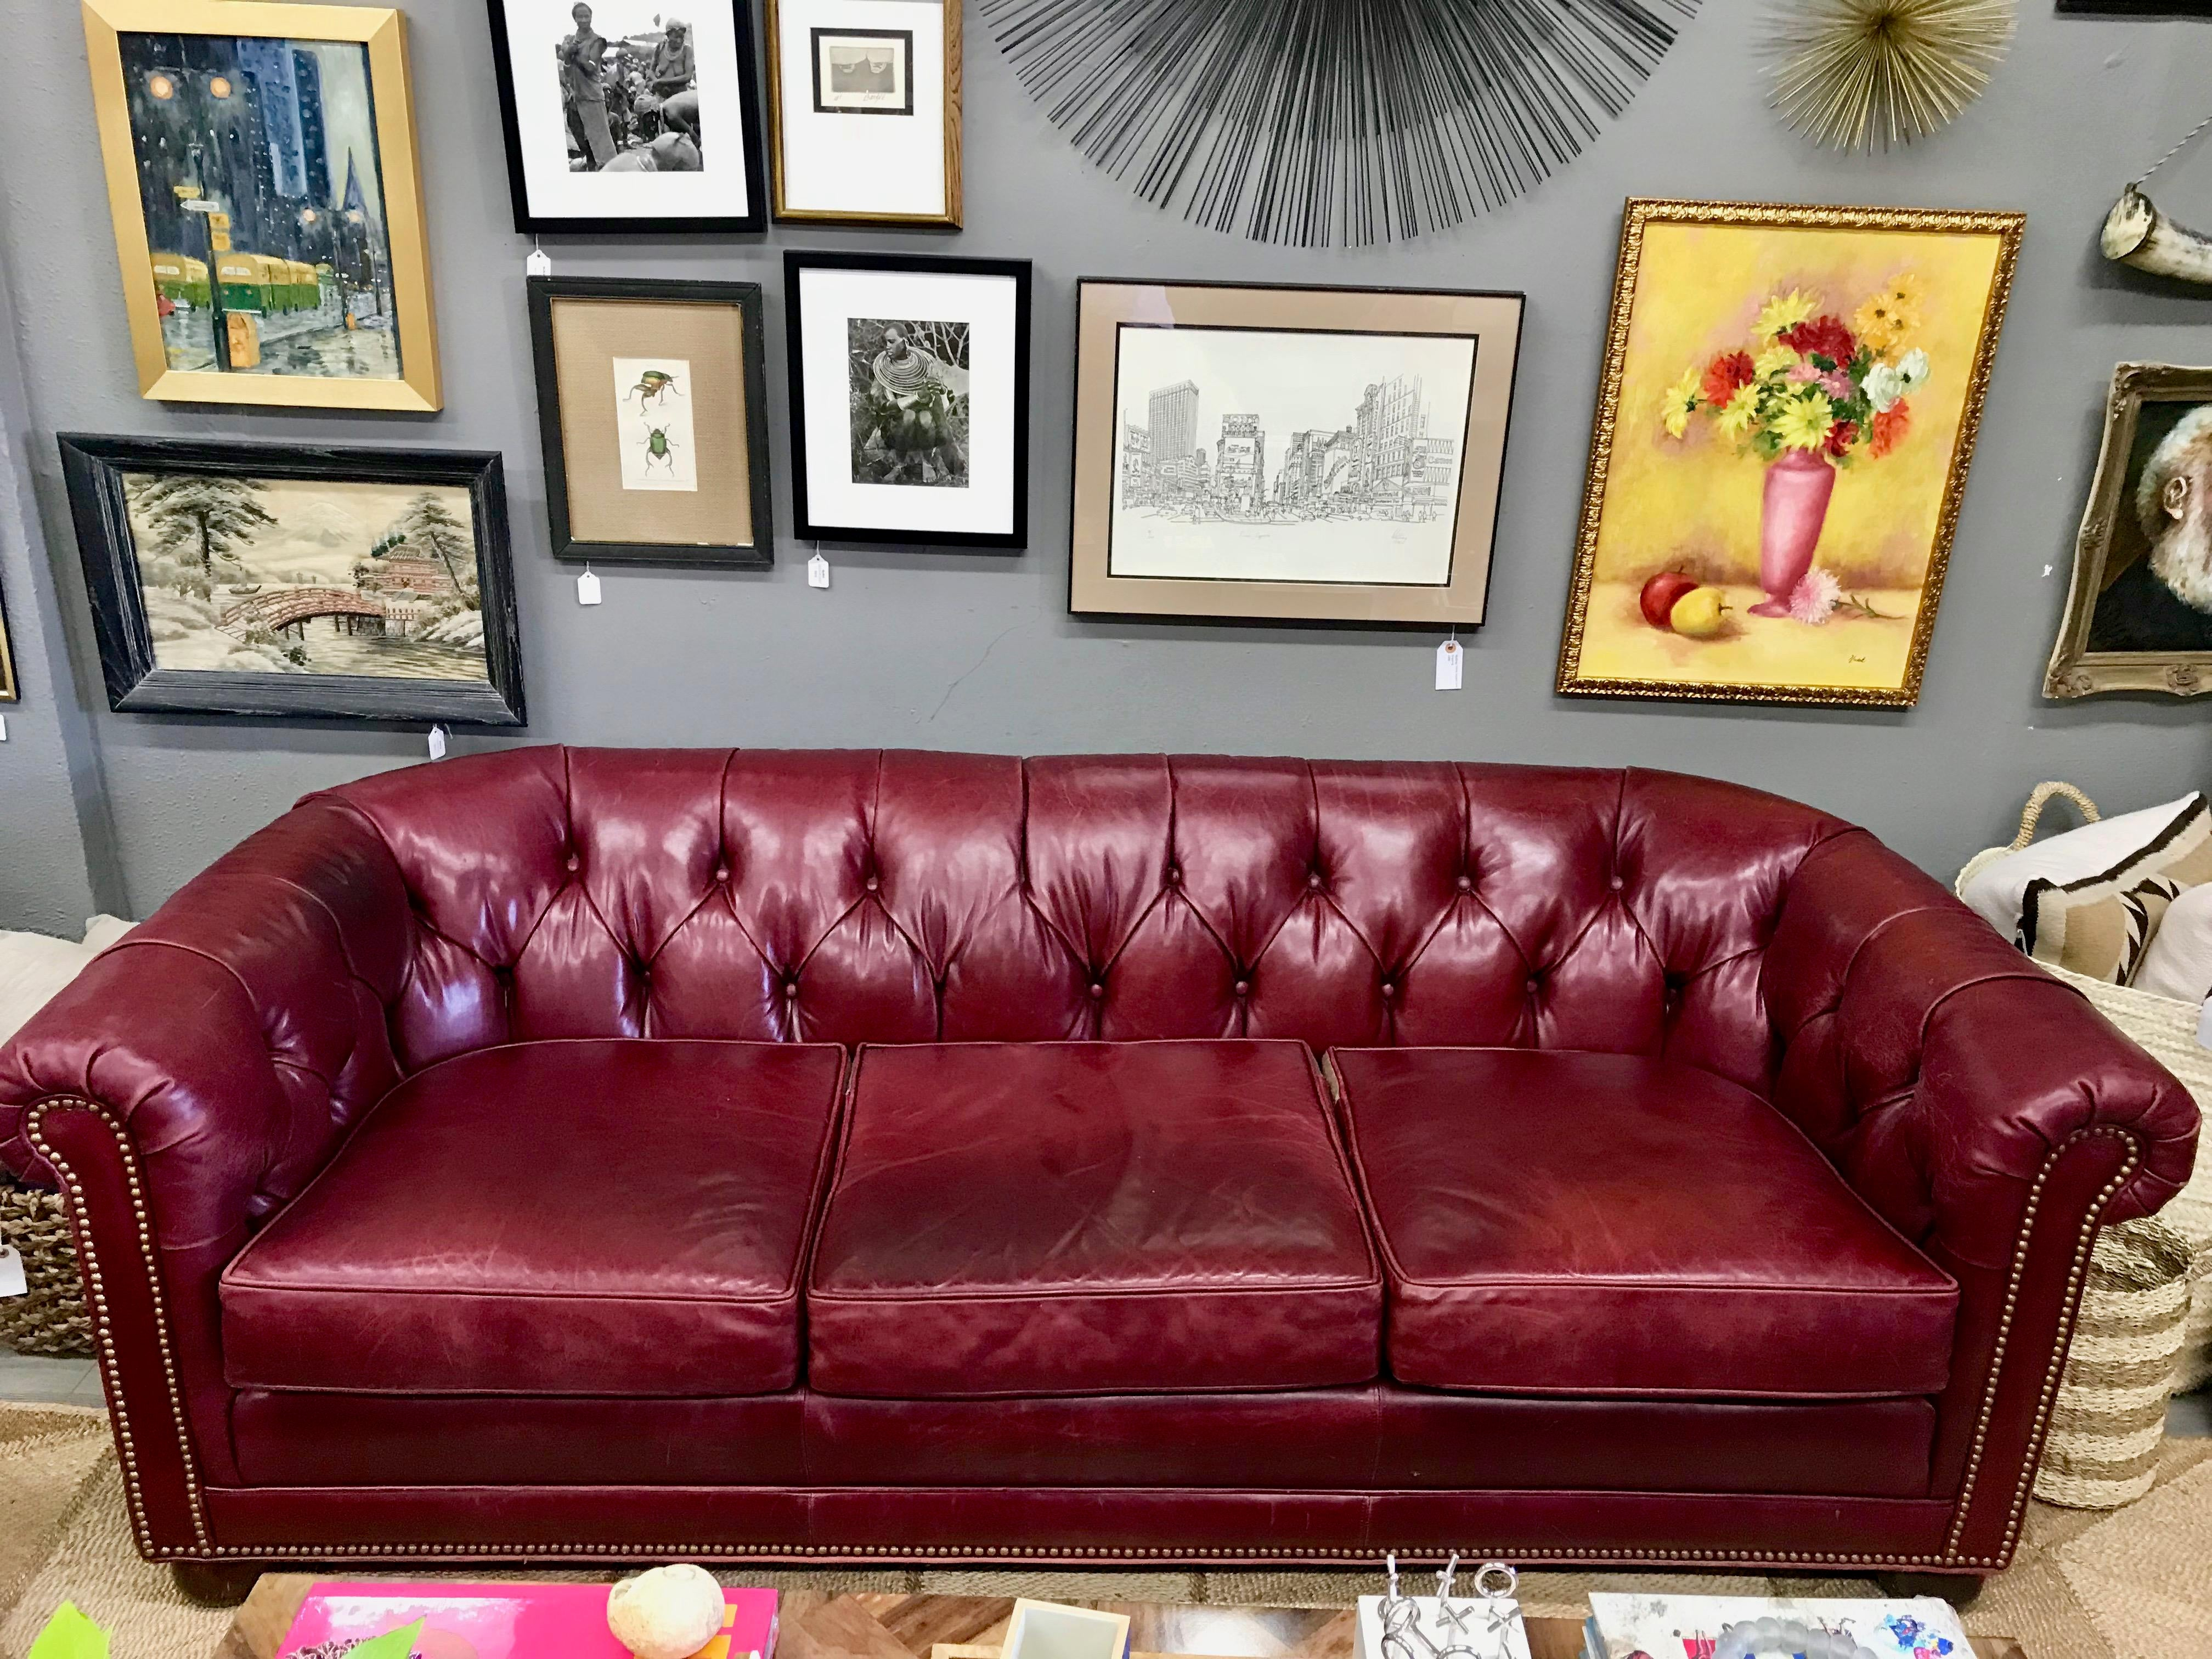 20th Century English Traditional Oxblood Ruby Red Chesterfield